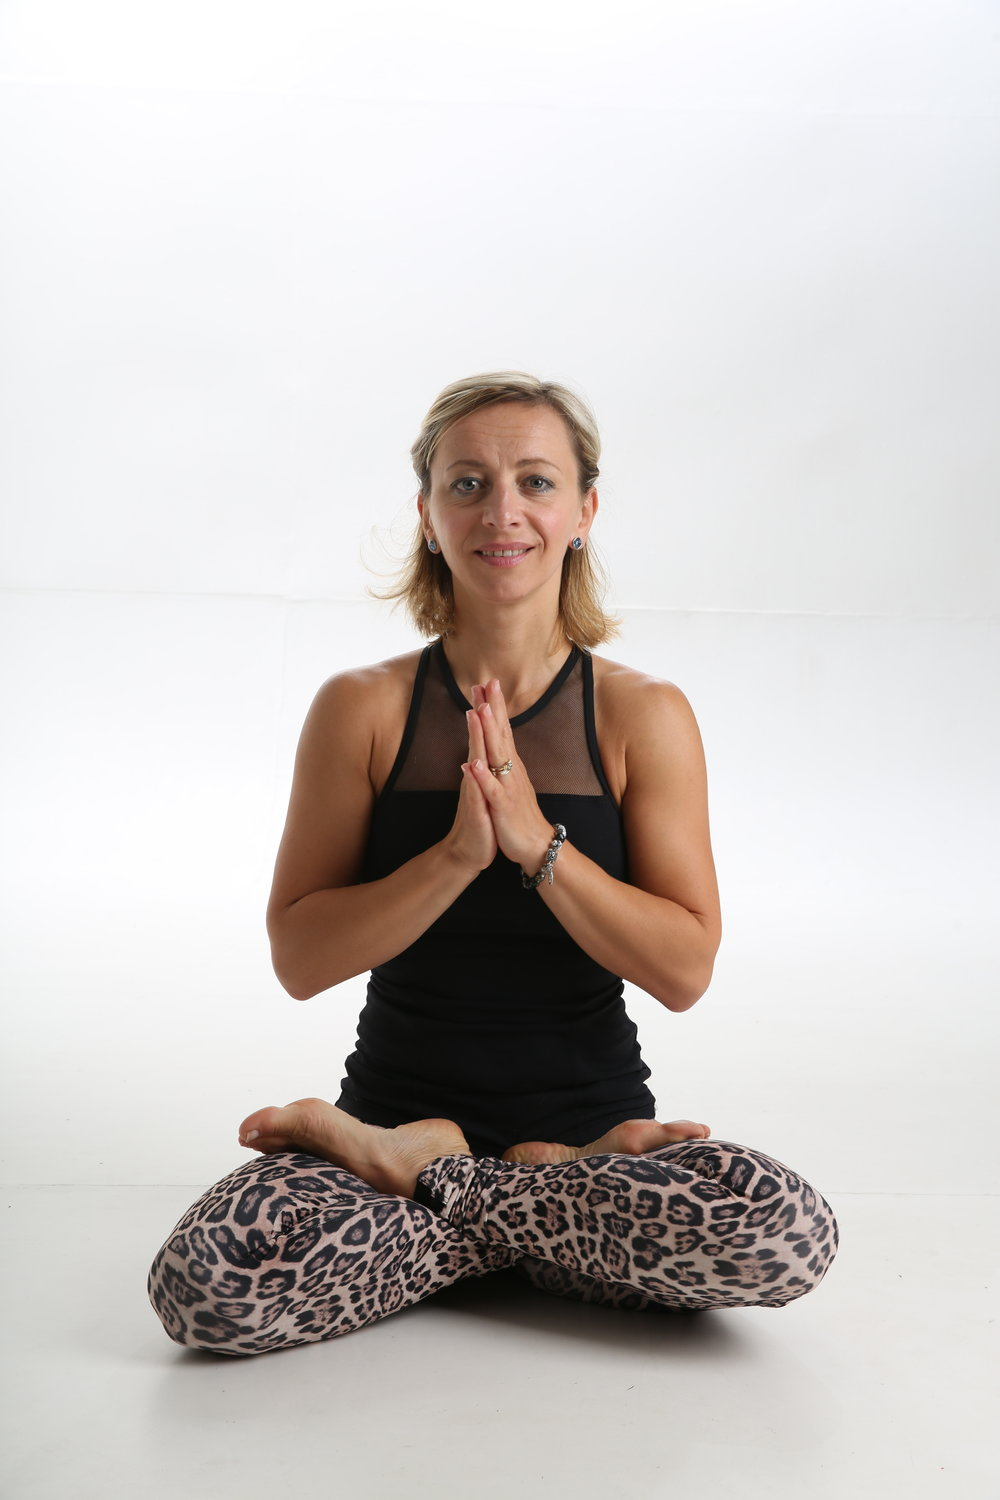 """Kat JenningsCo - Founder Ashtanga Vinyasa and Restorative Yoga Teacher. - My first encounter of Yoga was in 2009 when it was prescribed as a therapy to heal a back injury. In October 2010 I ventured to India to deepen my knowledge and understanding of Yoga and qualified as a """"200 HR"""" Yoga Teacher at Sampoorna Yoga, and have been teaching Yoga and promoting a healthier lifestyle ever since.Over the years of my yoga practice I was very fortunate to meet and study with some"""